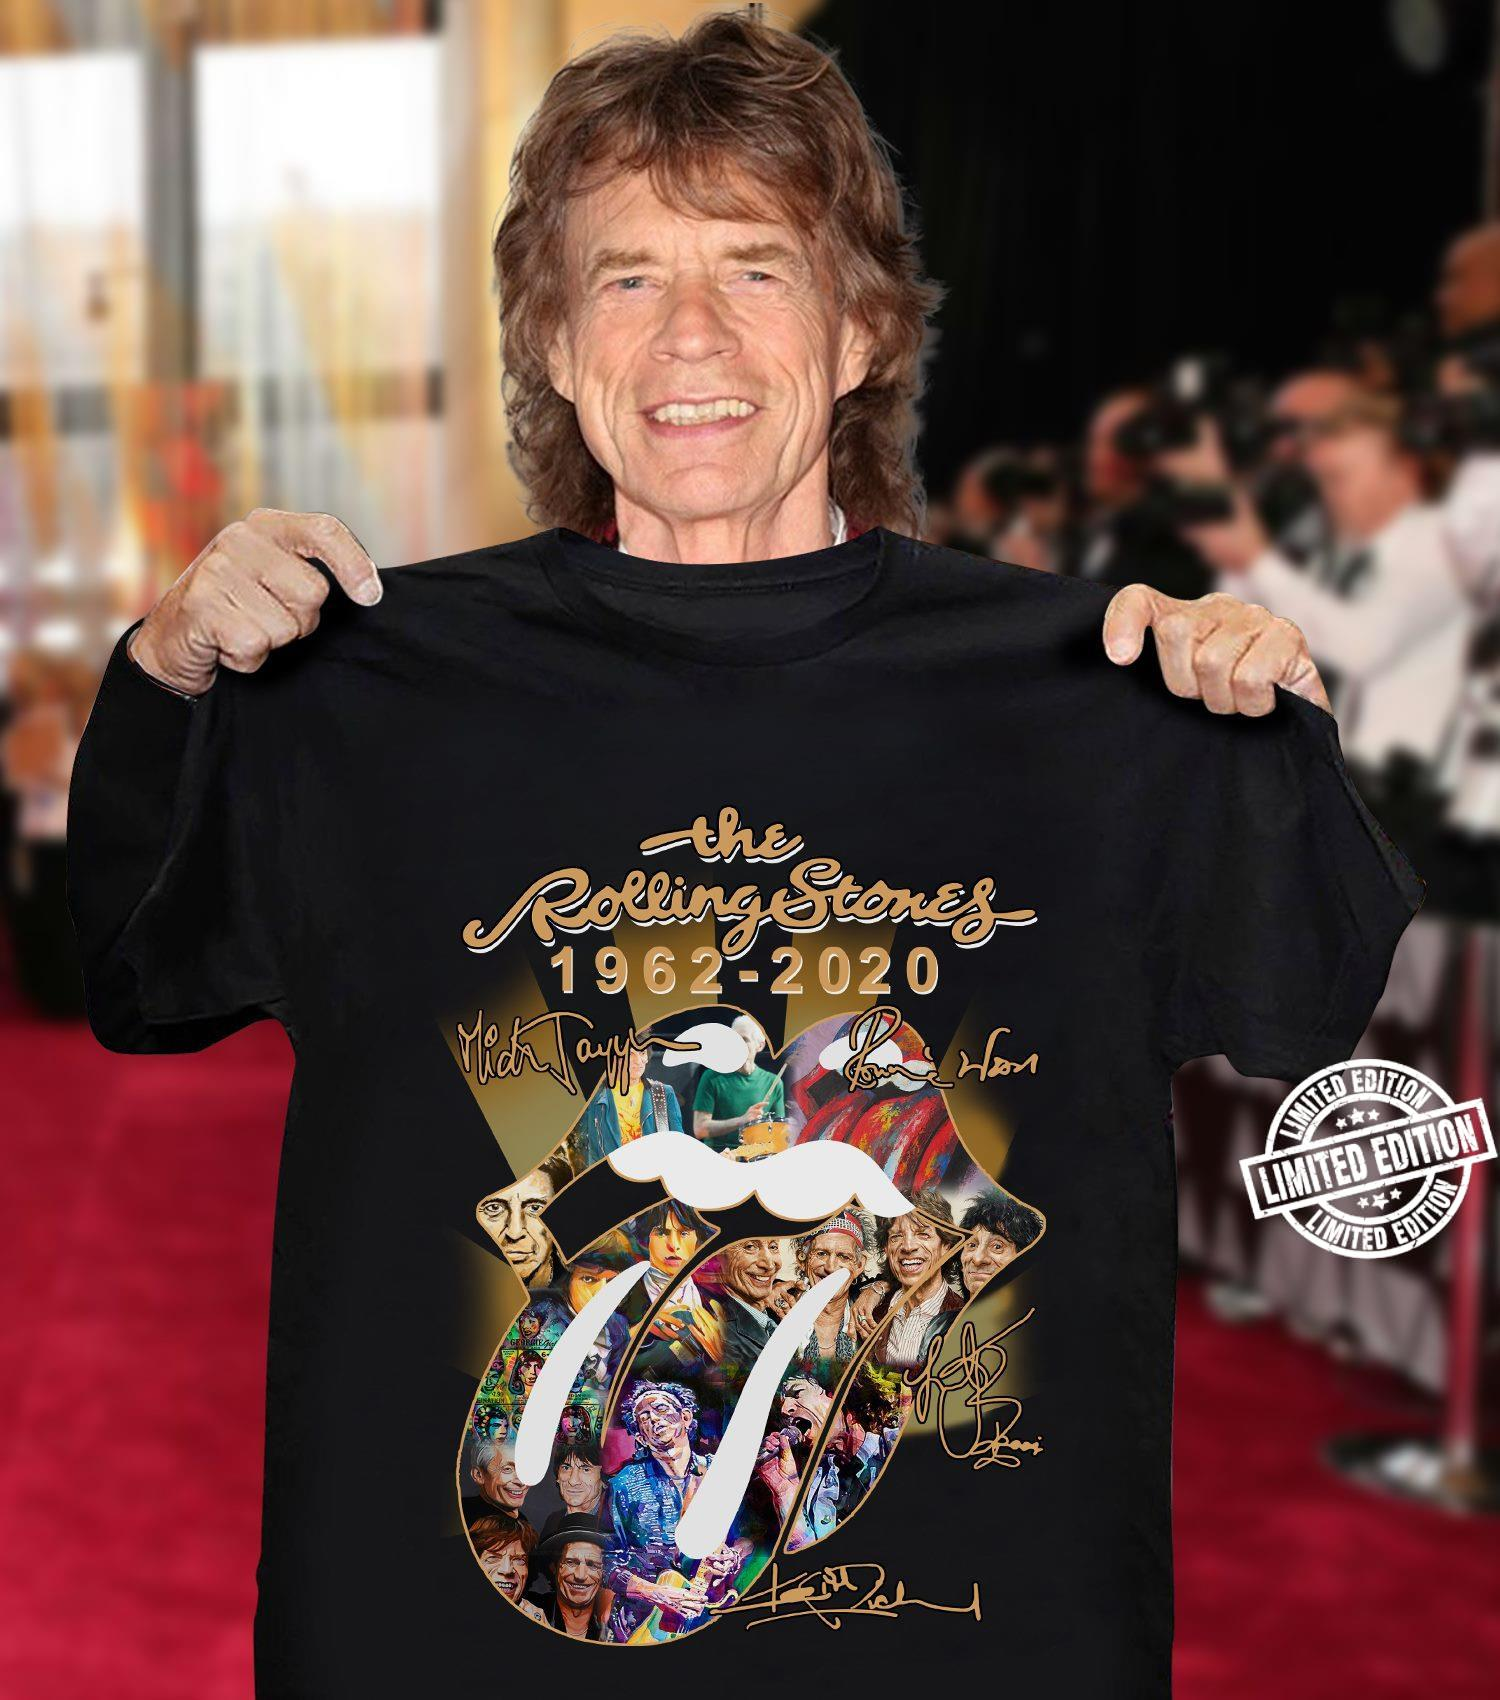 The rolling stones 1962-2020 singnature shirt